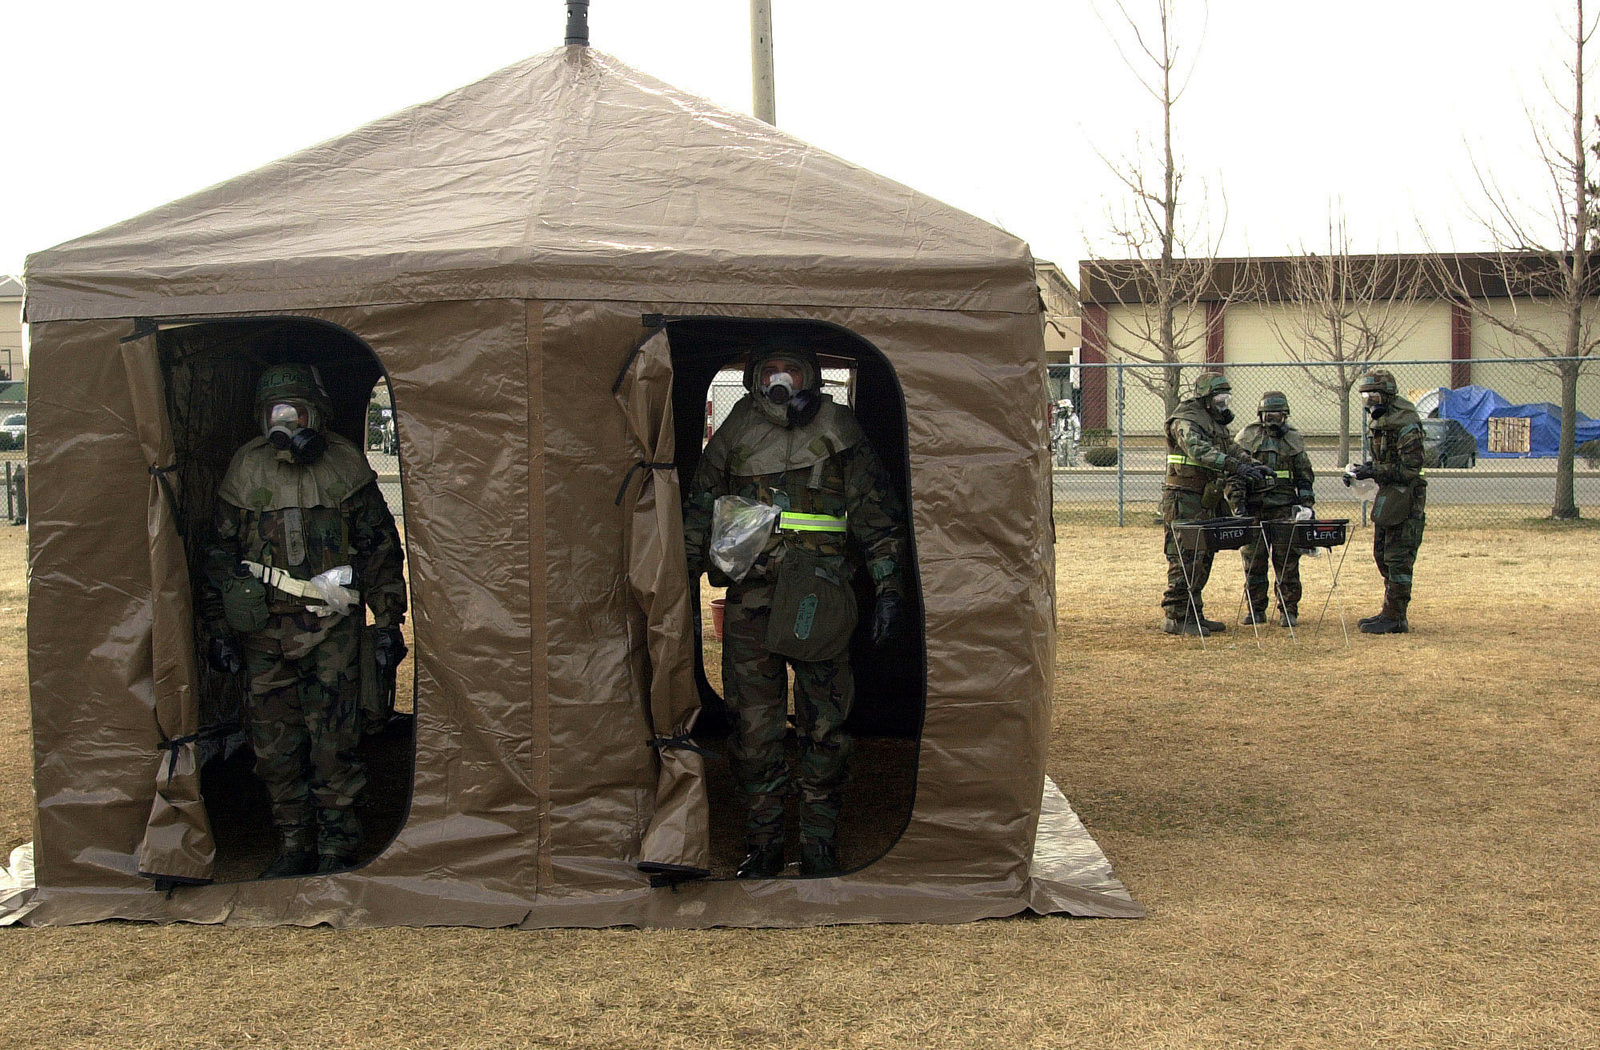 US Air Force Airmen of the 8th Fighter Wing, Kunsan Air Base, Republic of Korea, wear Mission-Oriented Protective Posture response level 4 (MOPP-4) gear as they exit the rinse off tent, the first stop of the Personnel Decontamination Stations (PDS) set up to decontaminate personnel after a simulated chemical weapons attack. During a recent Operational Readiness Inspection (ORI) airmen from Kunsan were tested on their war fighting skills